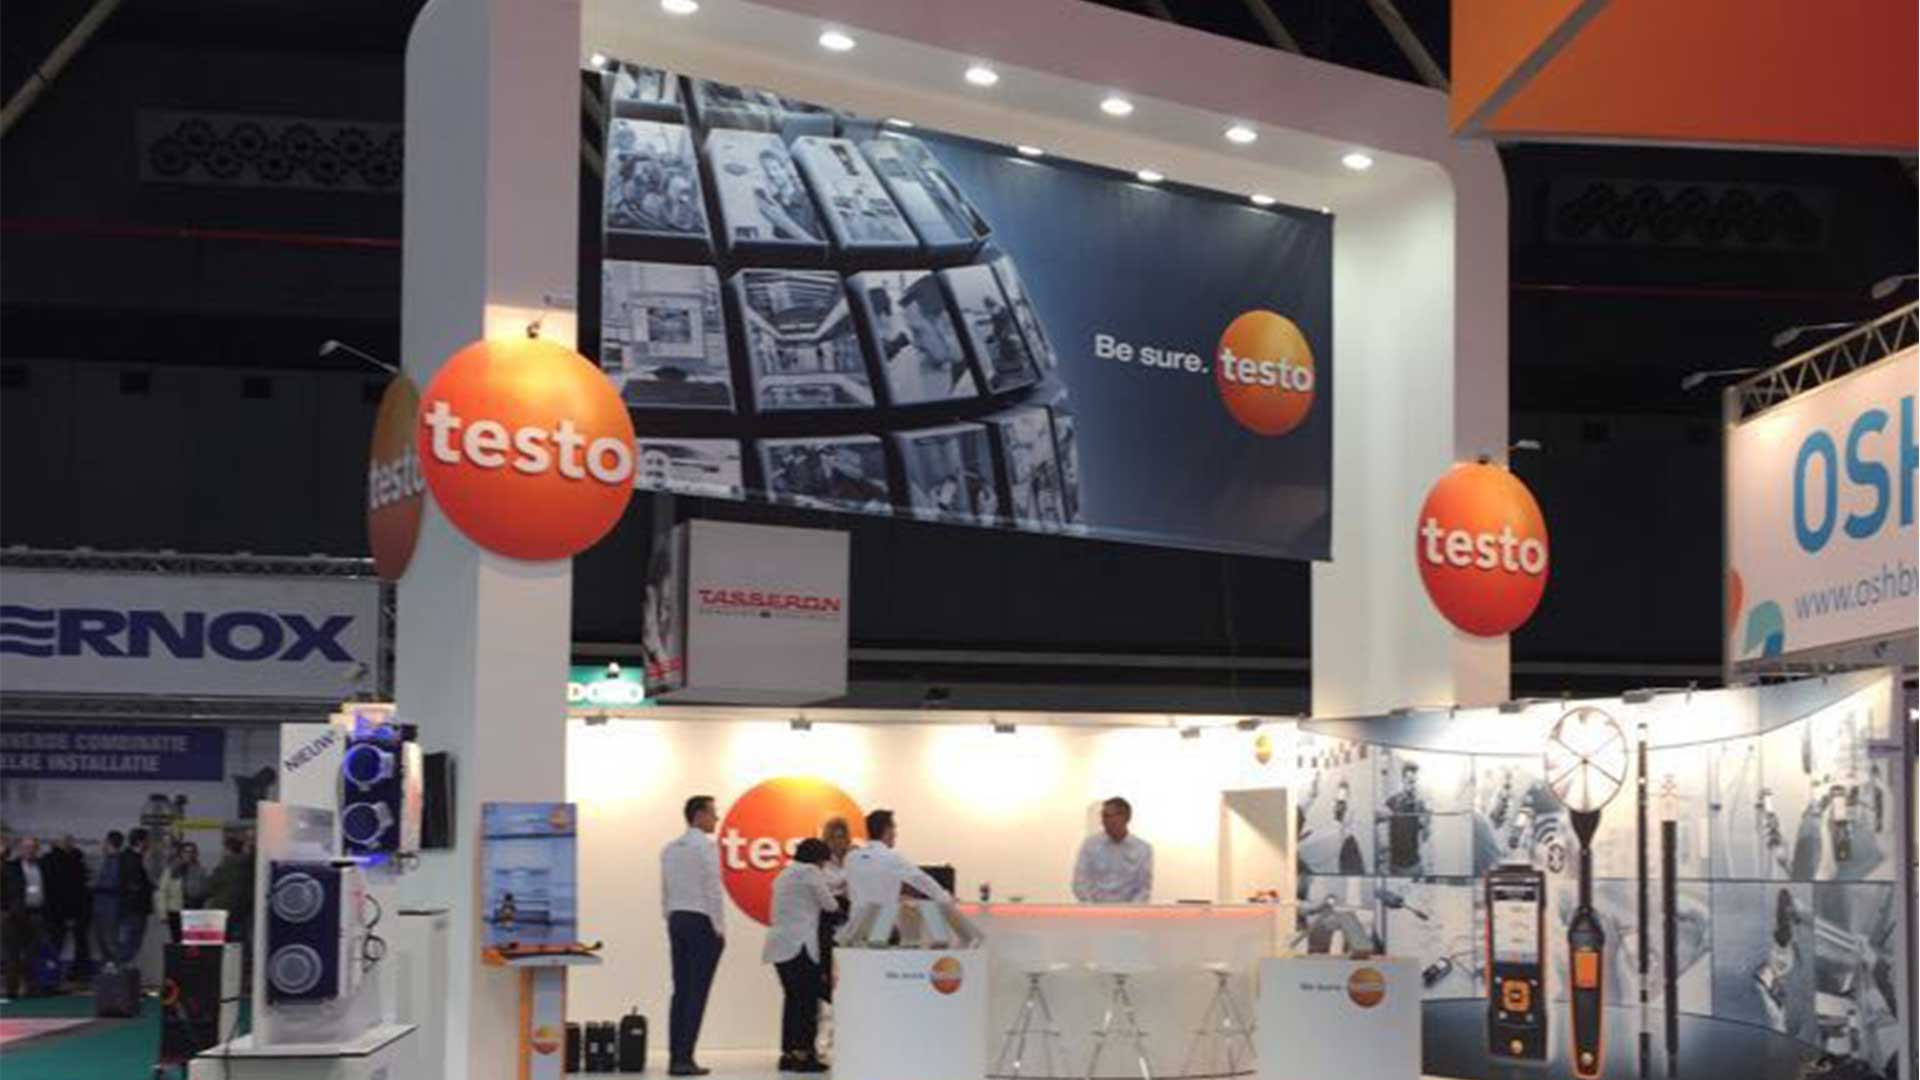 expospaces-testo-web-4